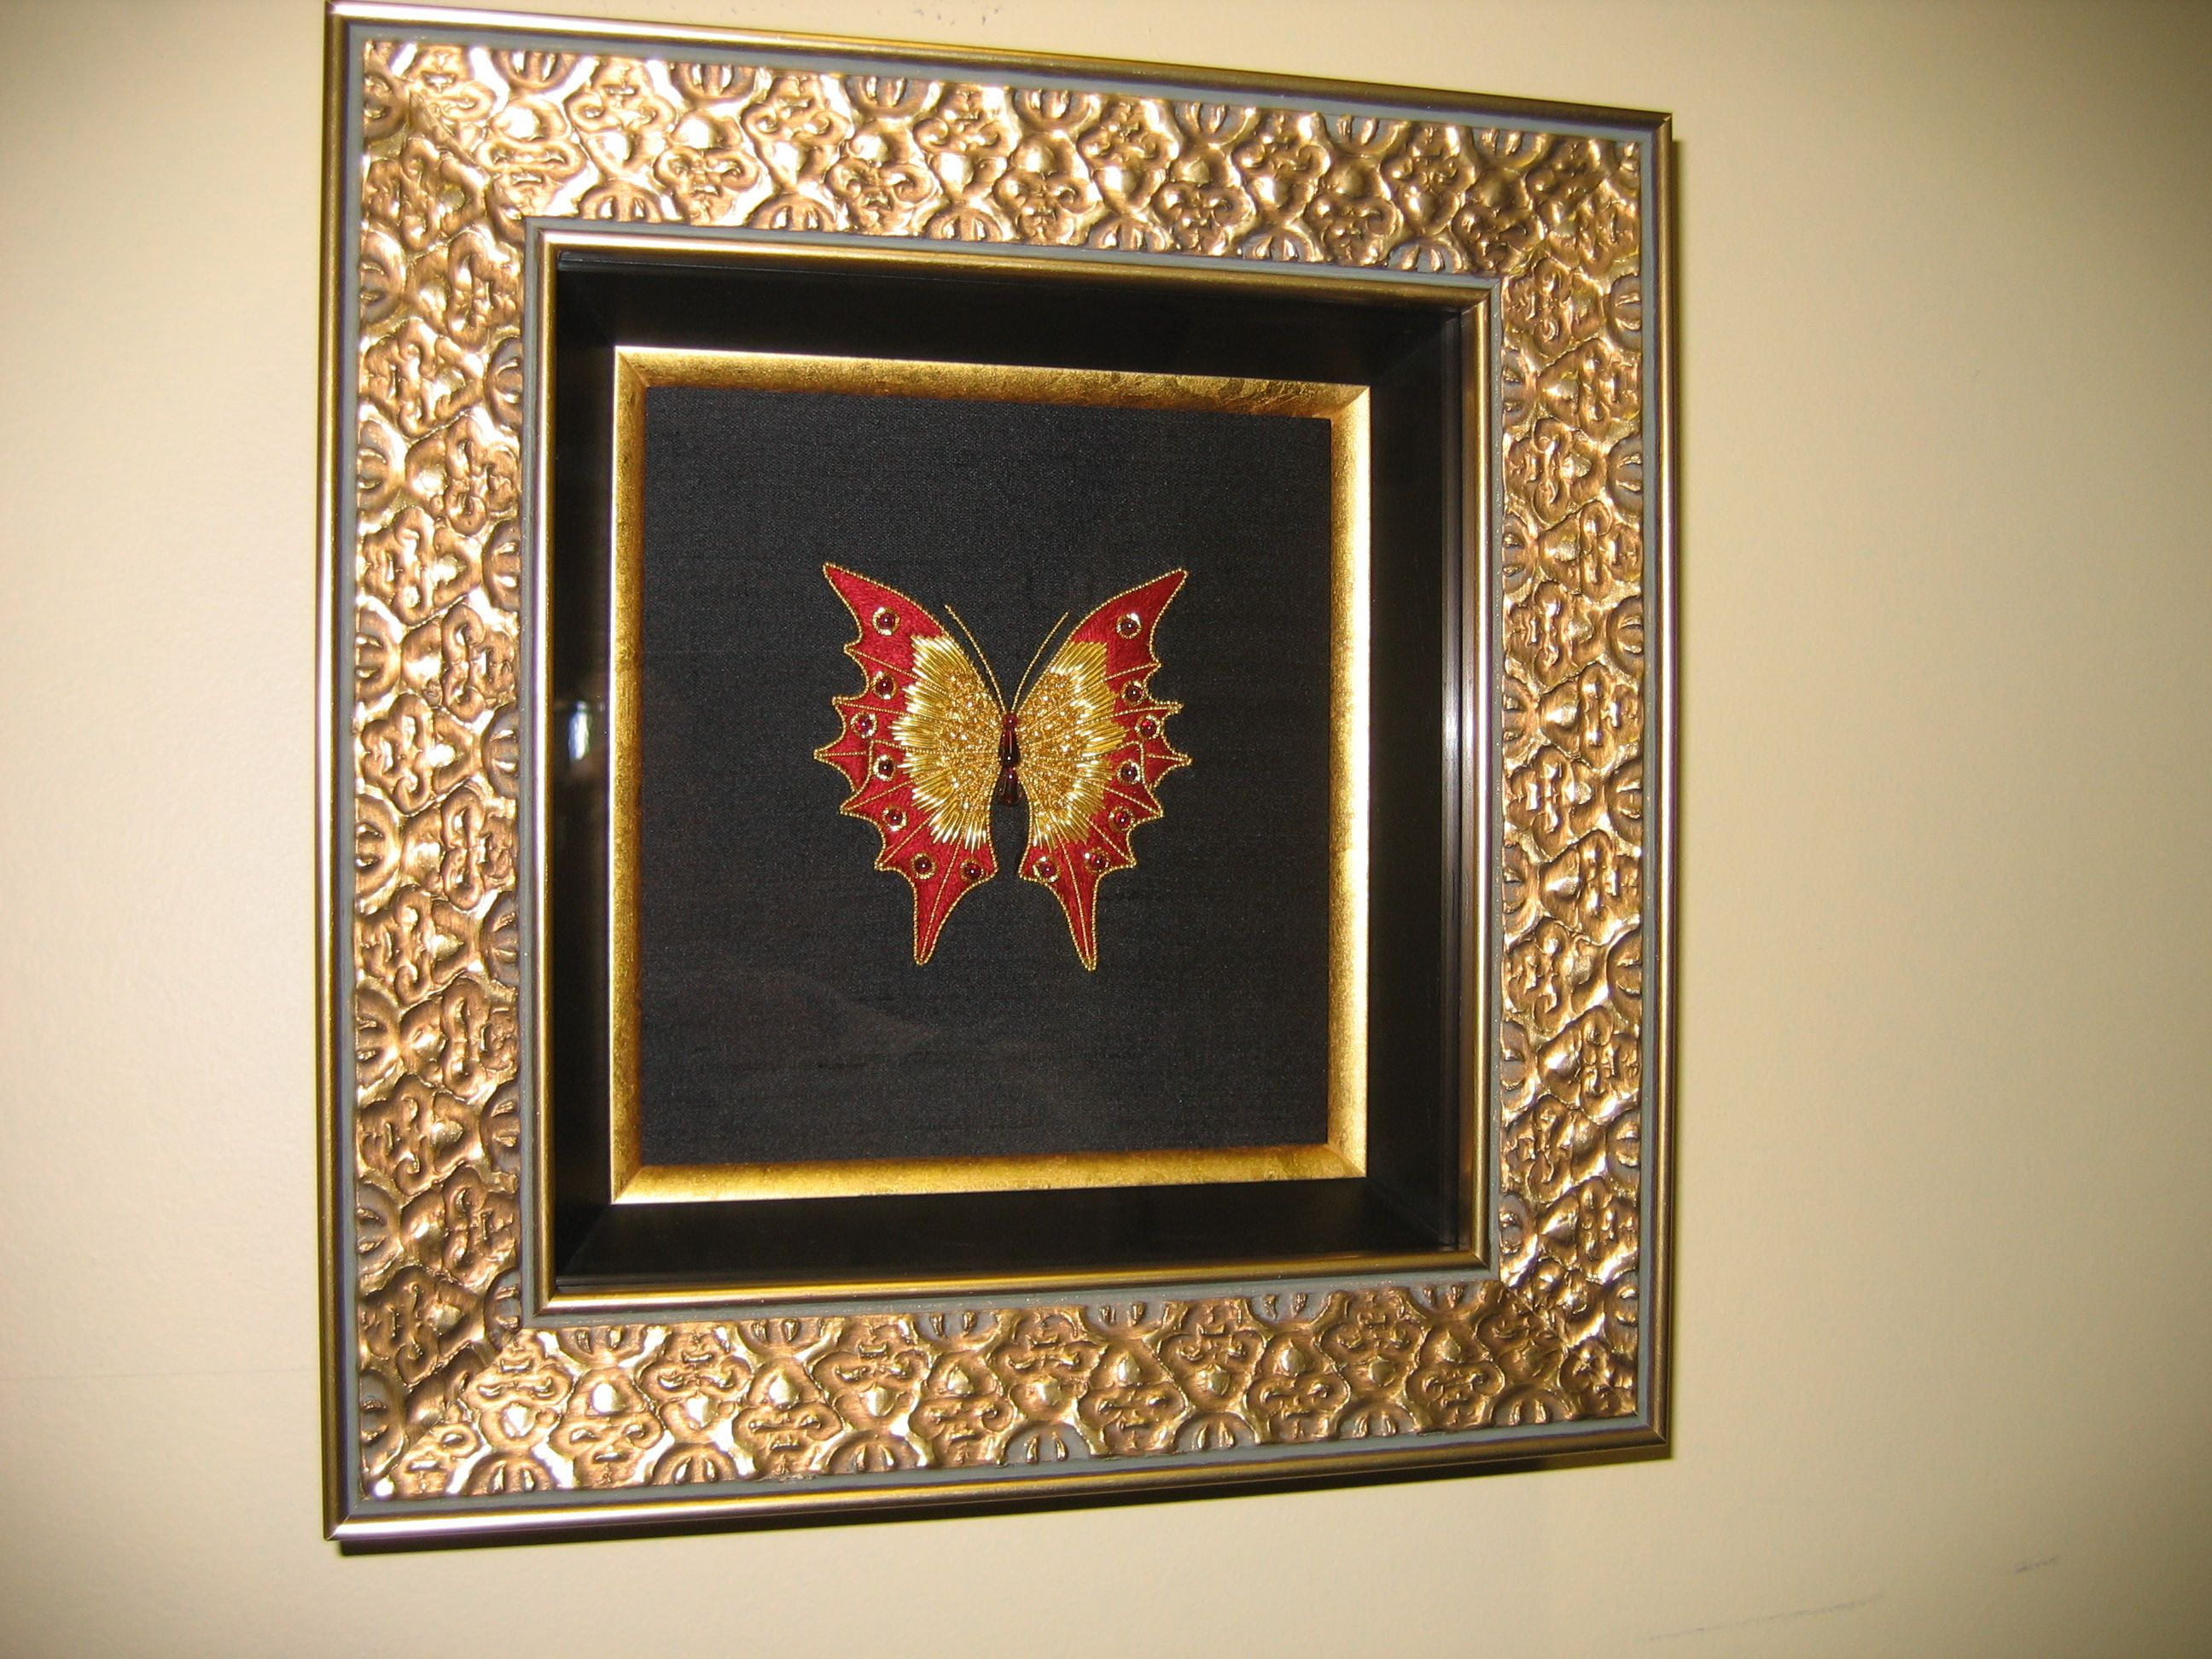 Silk embroidery framing design and custom framing by Framing to a T.